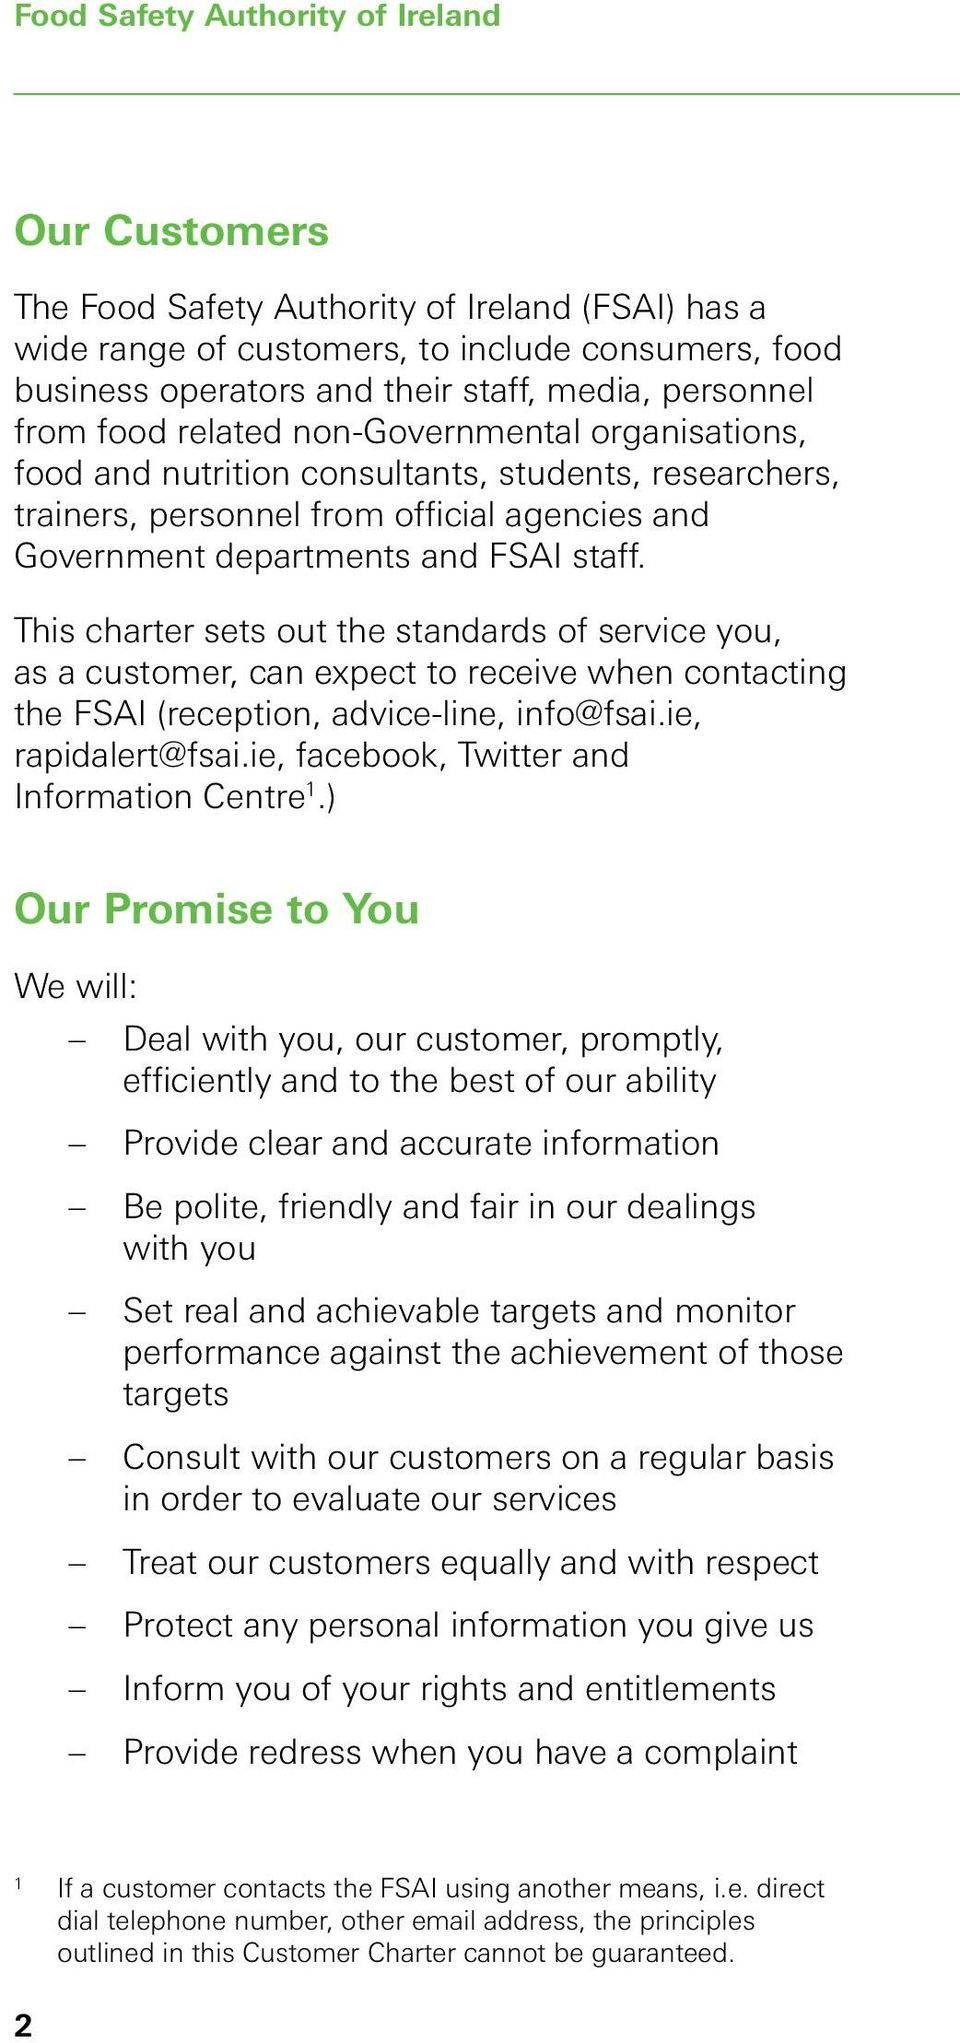 This charter sets out the standards of service you, as a customer, can expect to receive when contacting the FSAI (reception, advice-line, info@fsai.ie, rapidalert@fsai.